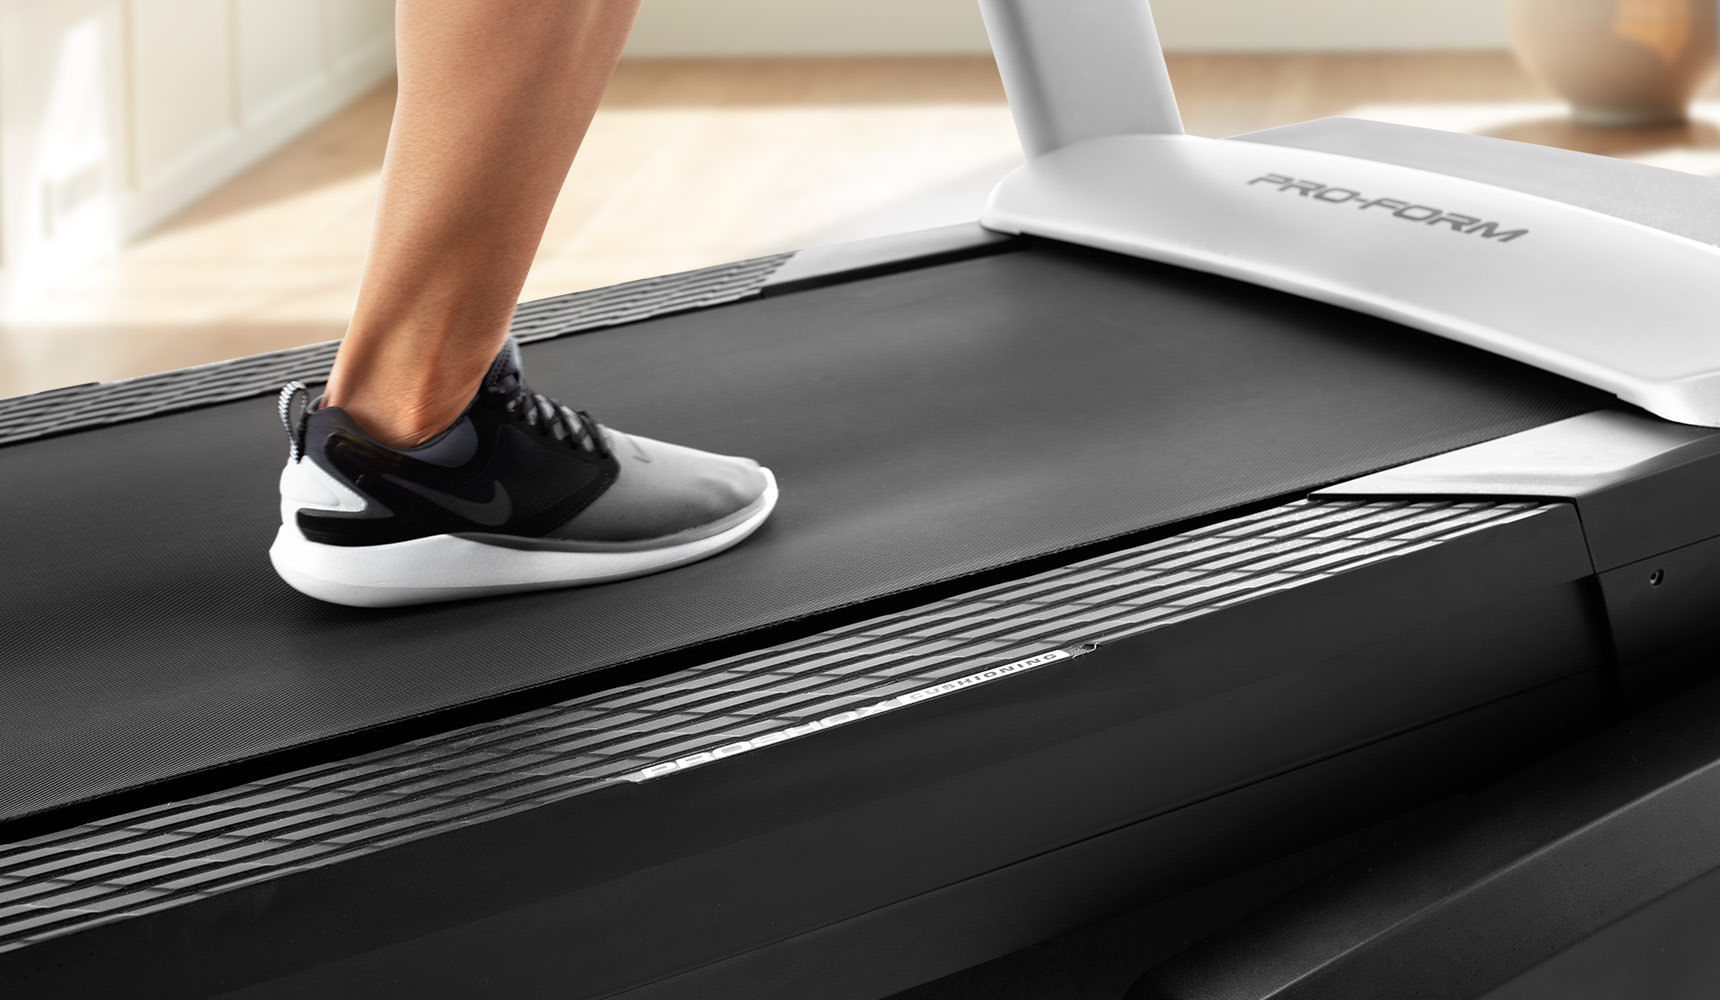 Proform pro 2000 treadmill review 2018: #top treadmill for $$$.